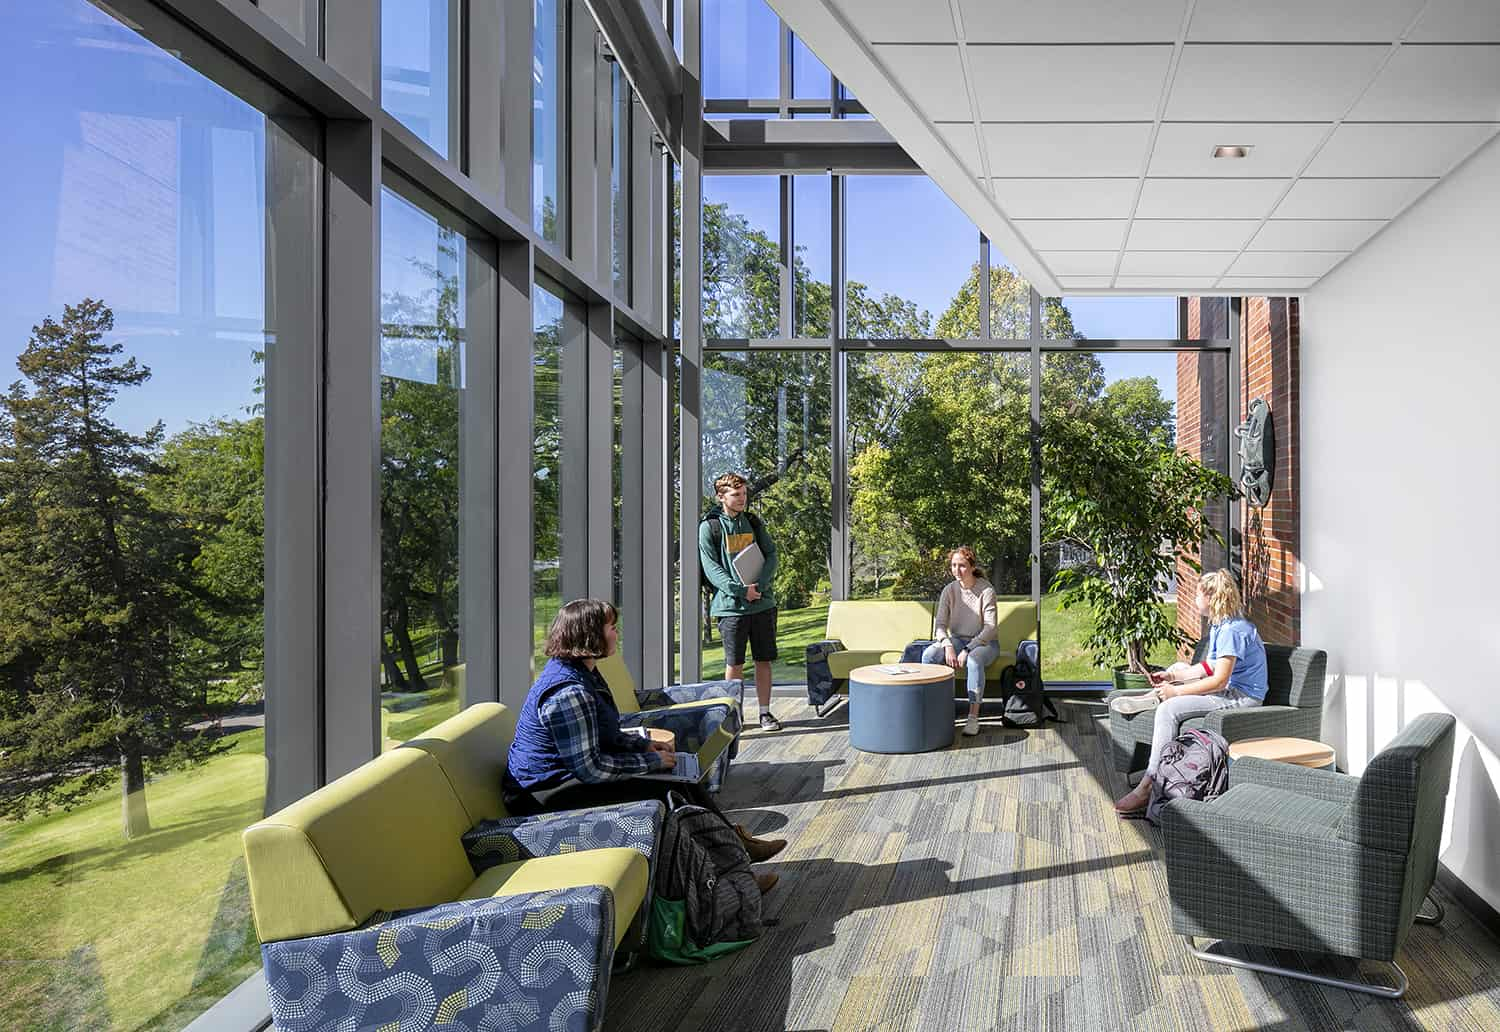 A daylit second floor lounge that offers expansive views to the historic campus.